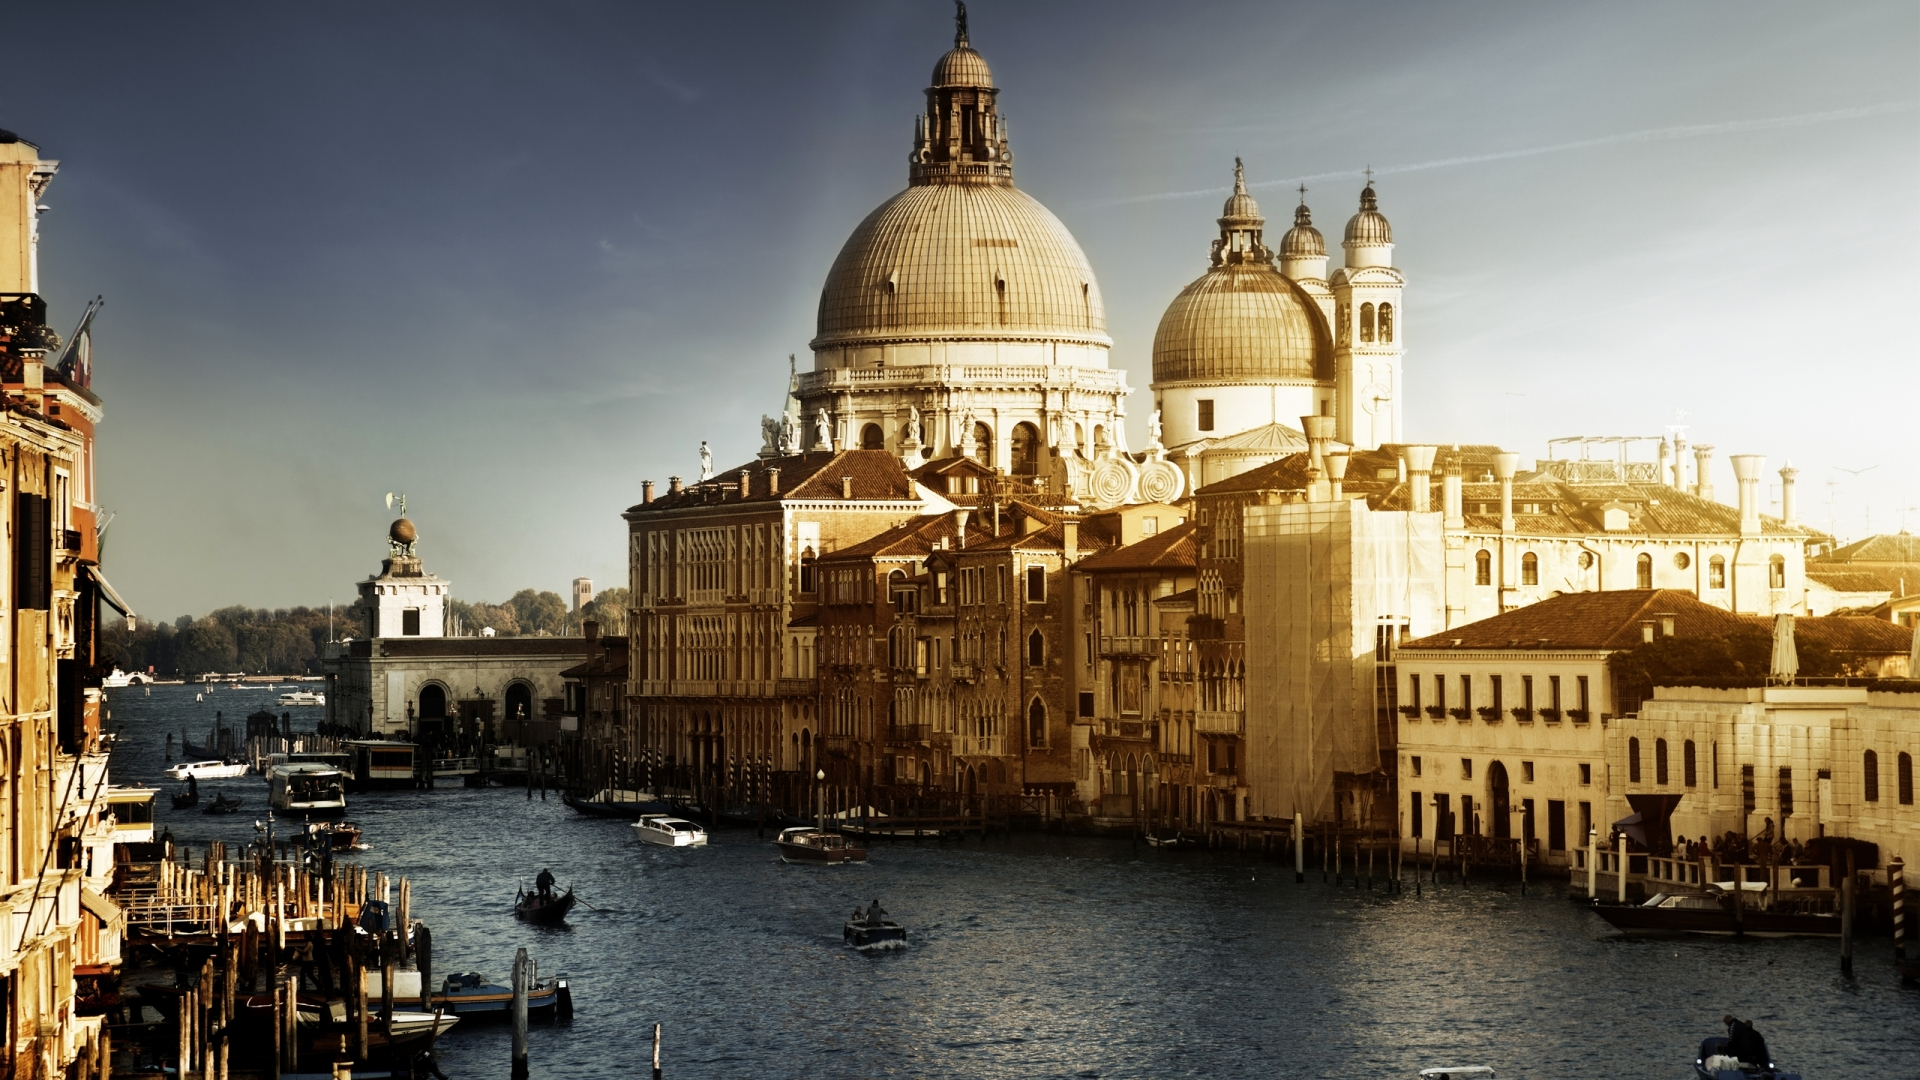 free desktop venice city hd download high resolution images